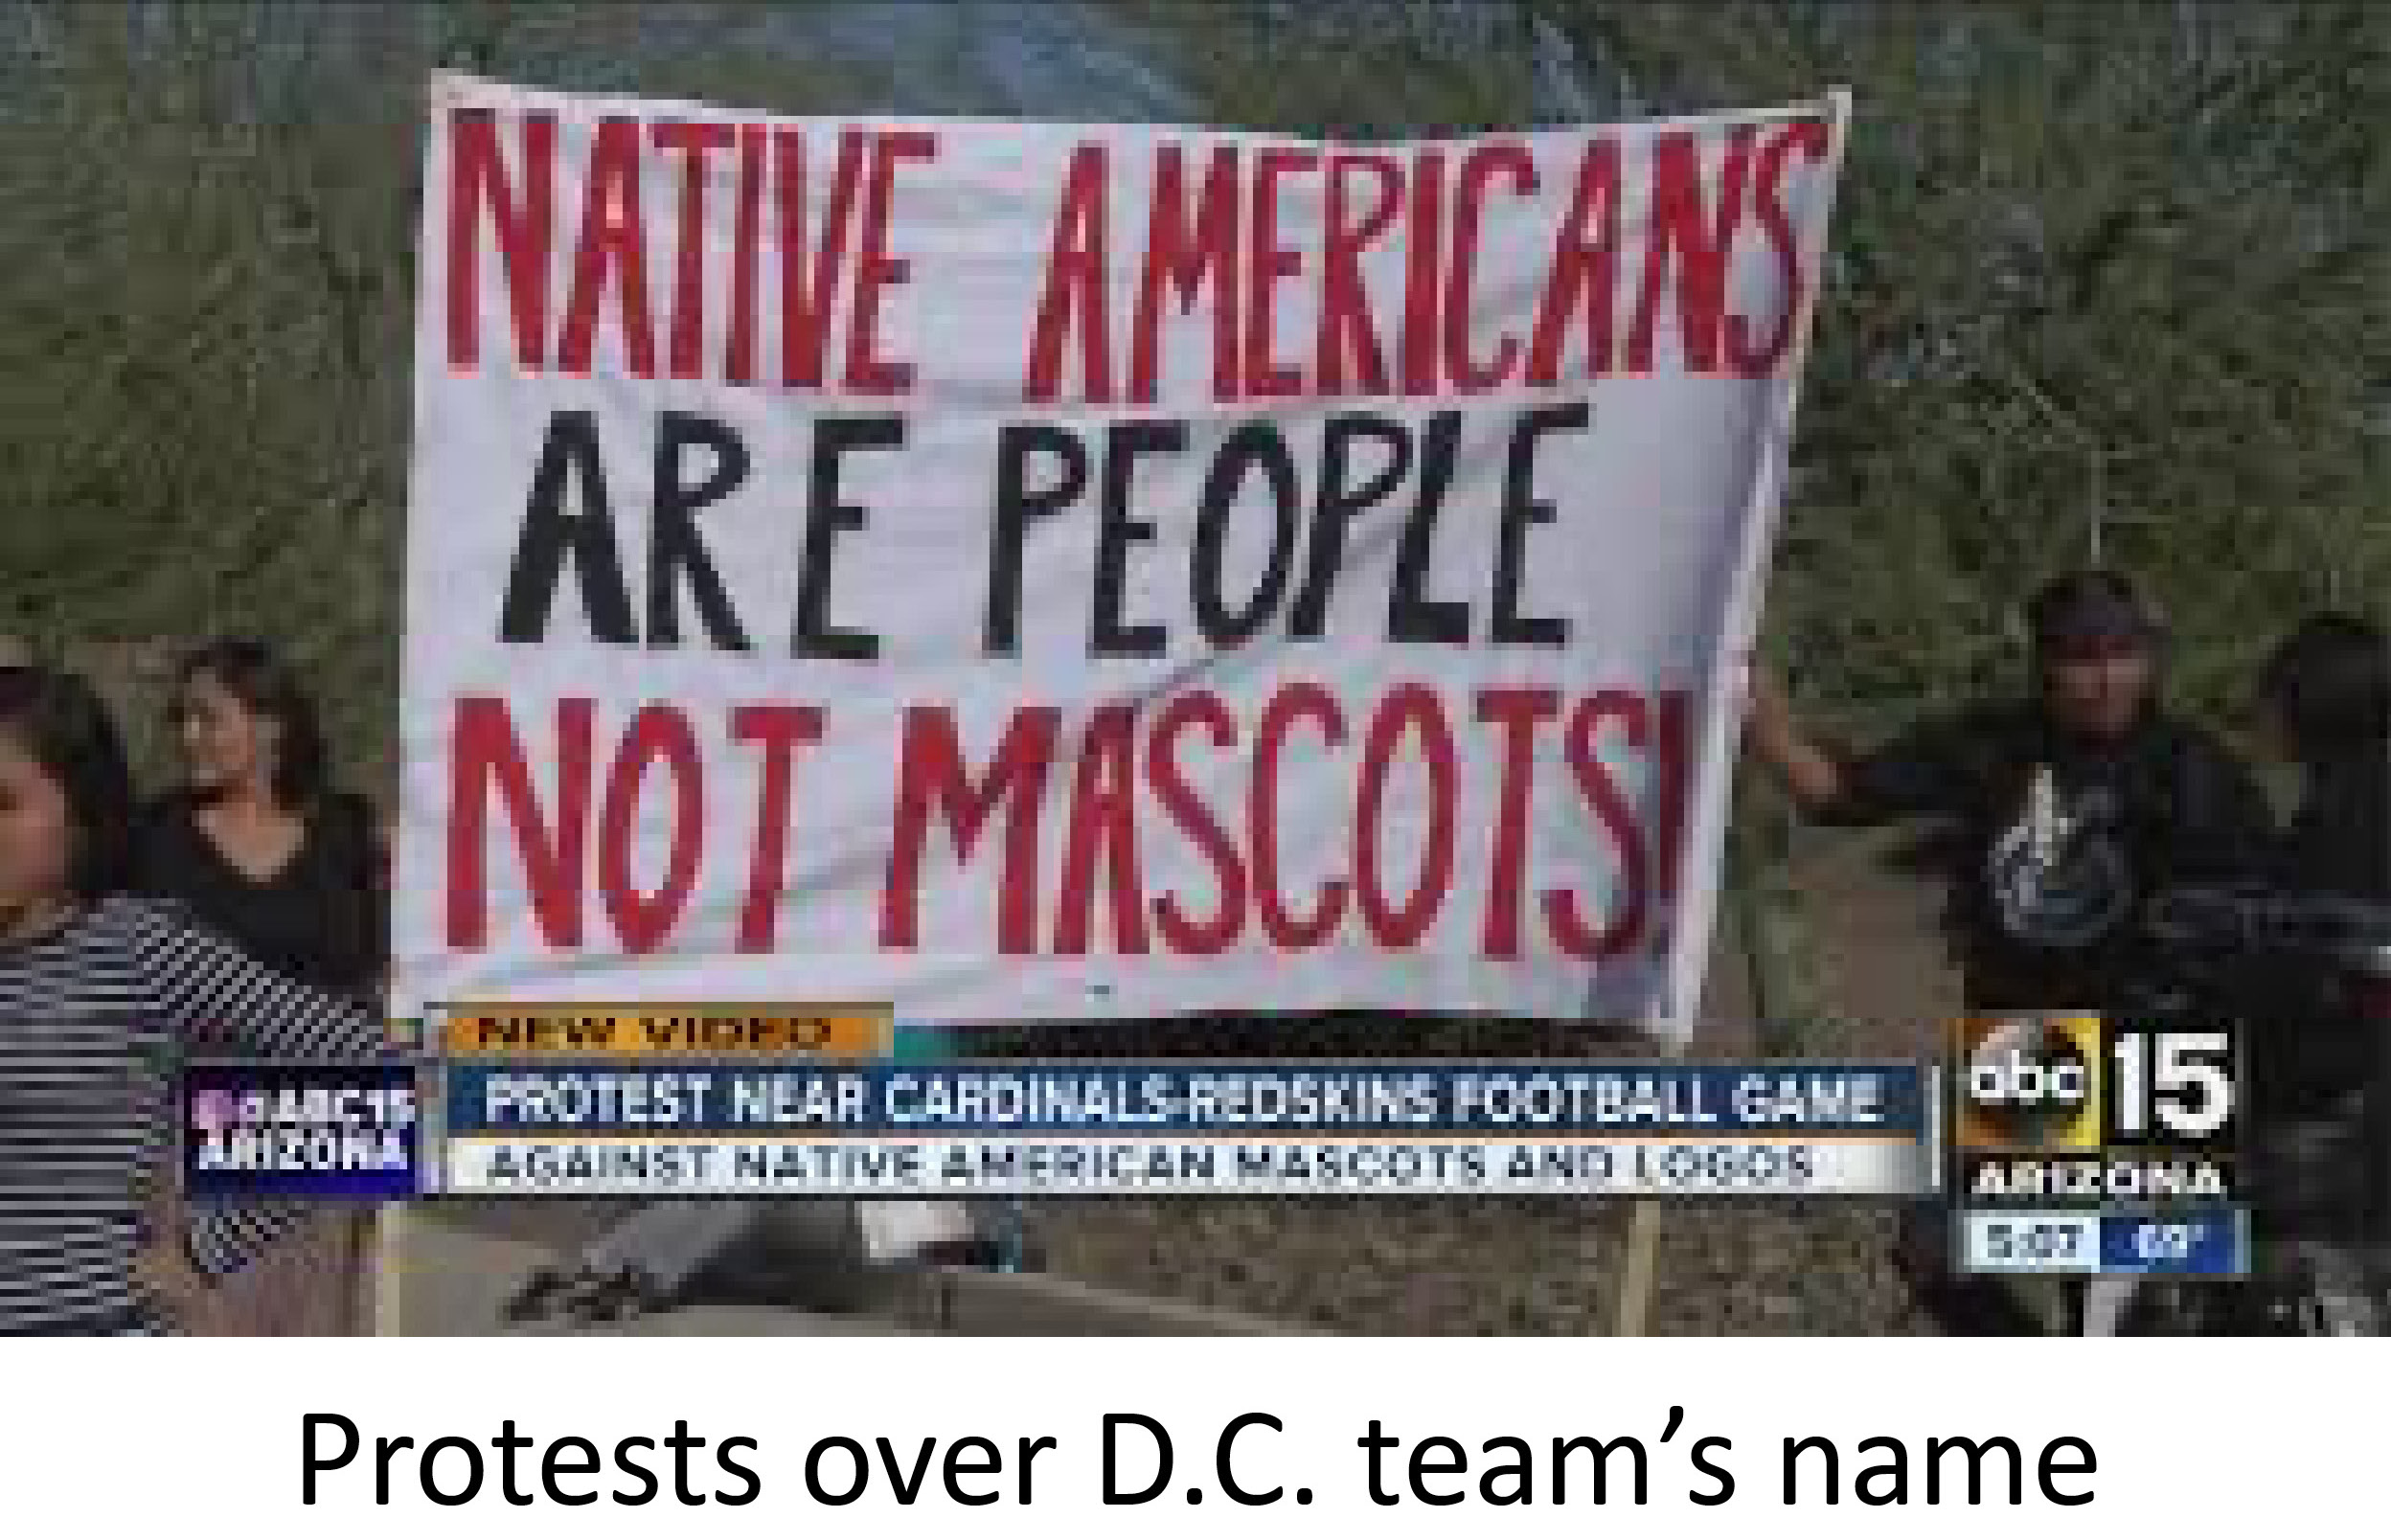 SOURCE: https://news.umich.edu/wp-content/uploads/mc-image-cache/2020/02/native-american-mascots-names-chants-more-offensive-than-previously-reported.jpg